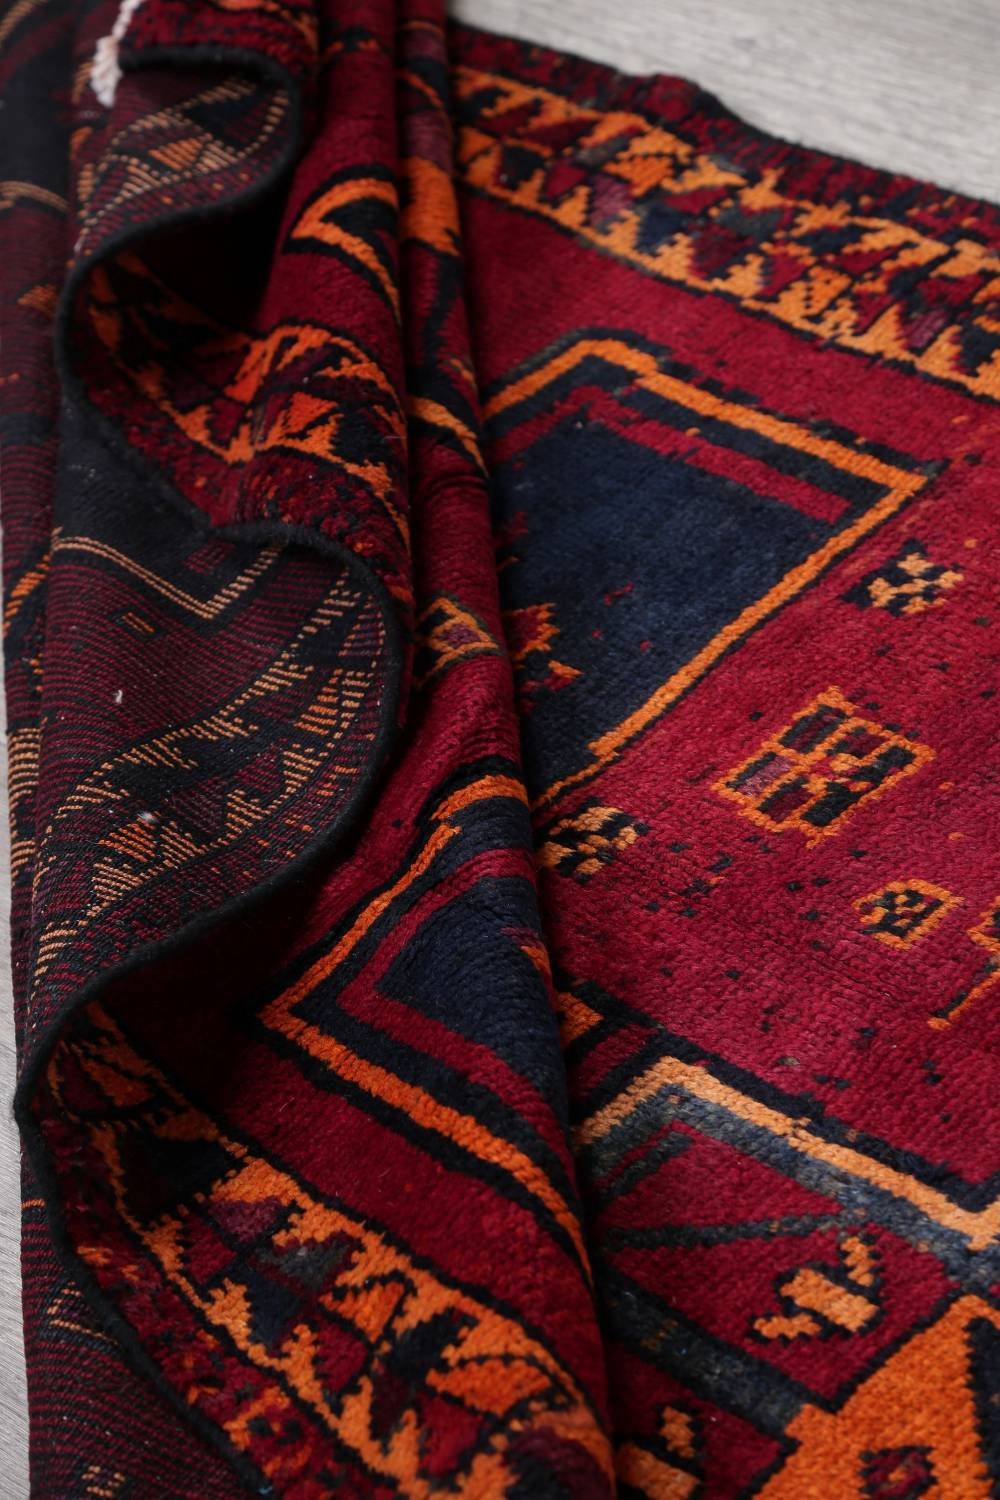 Antique Geometric Lori Persian Hand-Knotted 4x13 Wool Runner Rug image 18